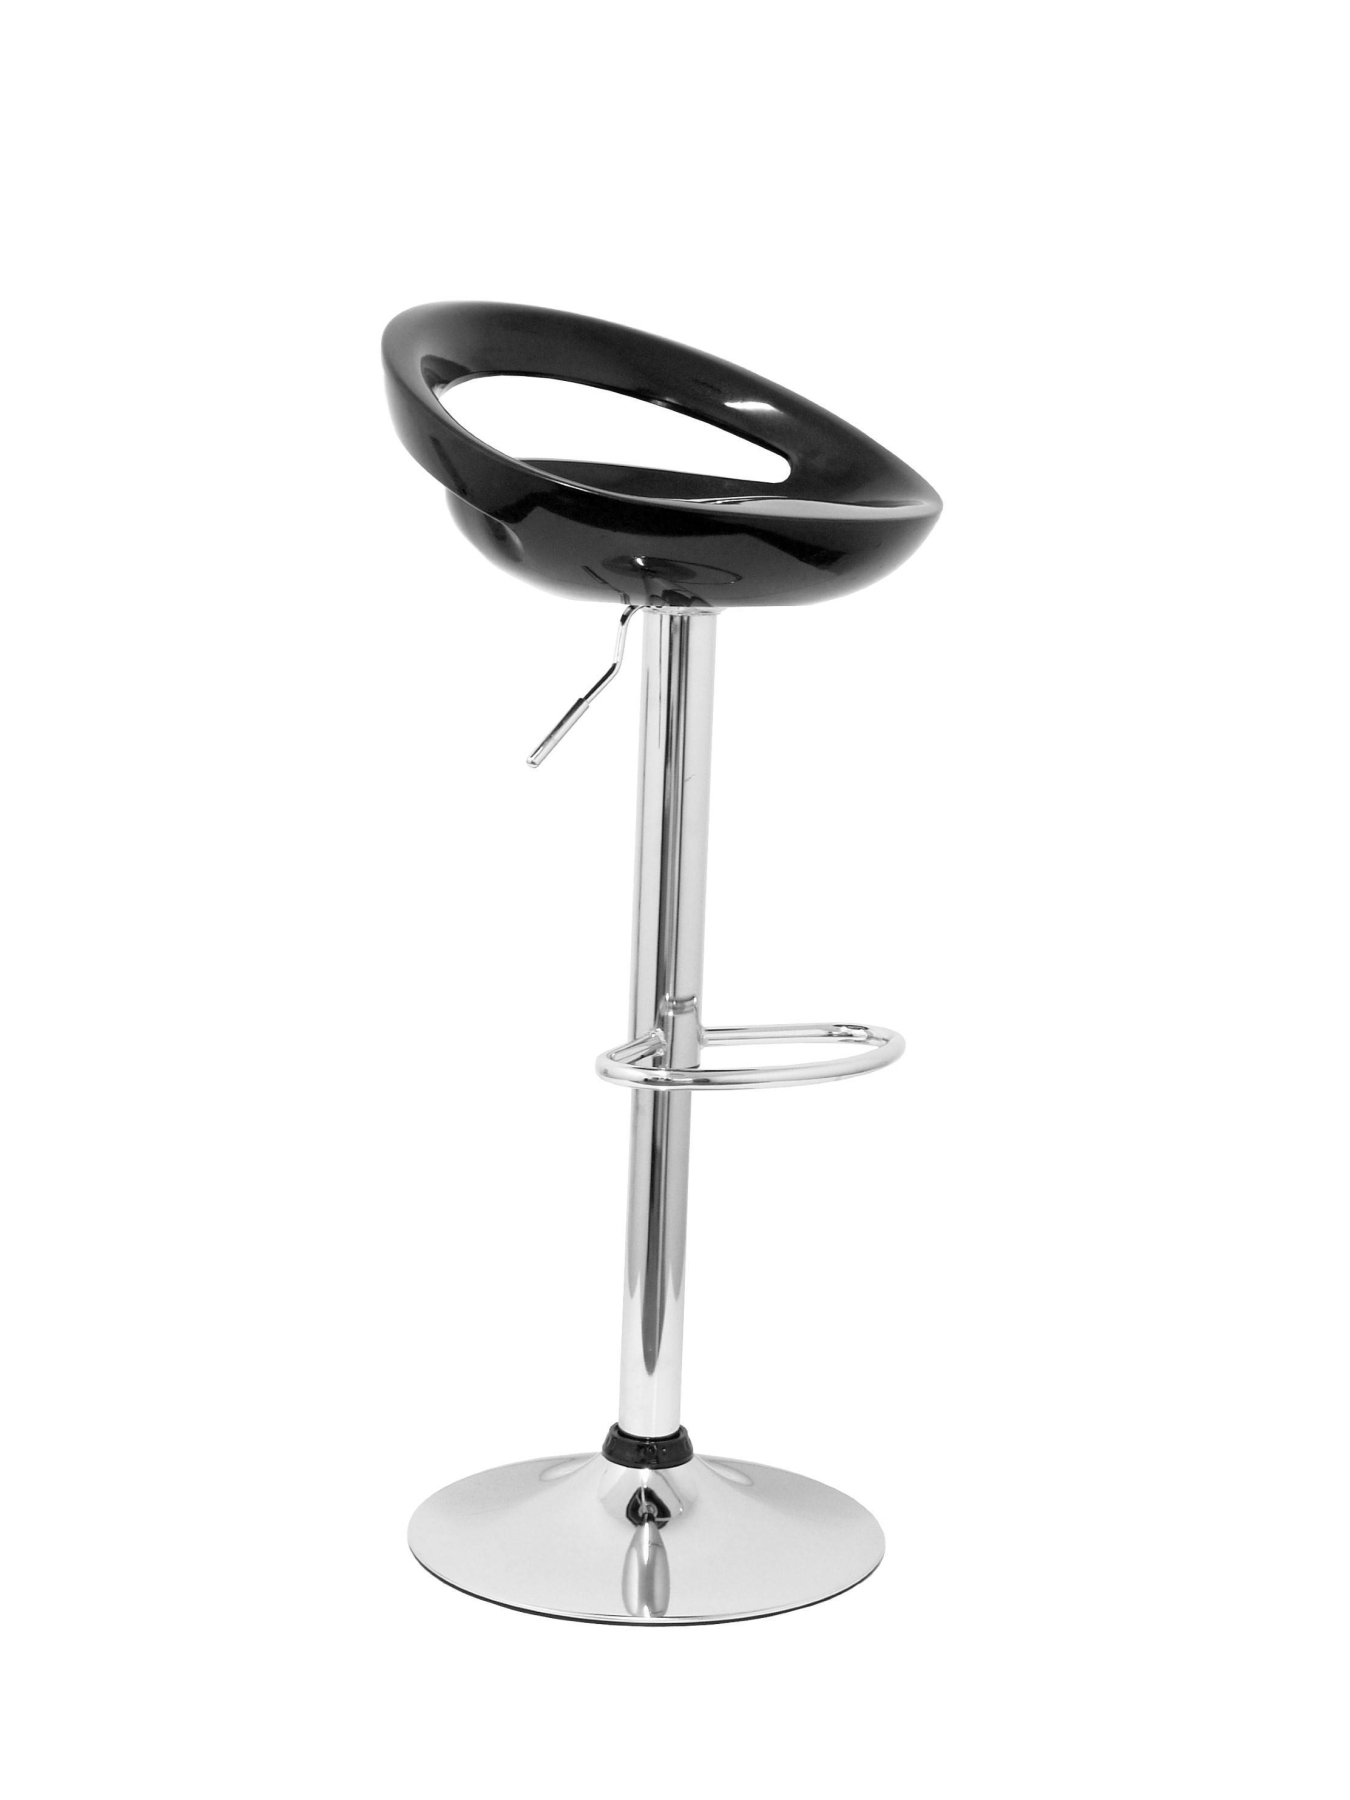 OUTLET Barroom Stool, Swivel And Height Adjustable By Gas Cylinder (include Hoop Footrest Chrome Finish)-Asie